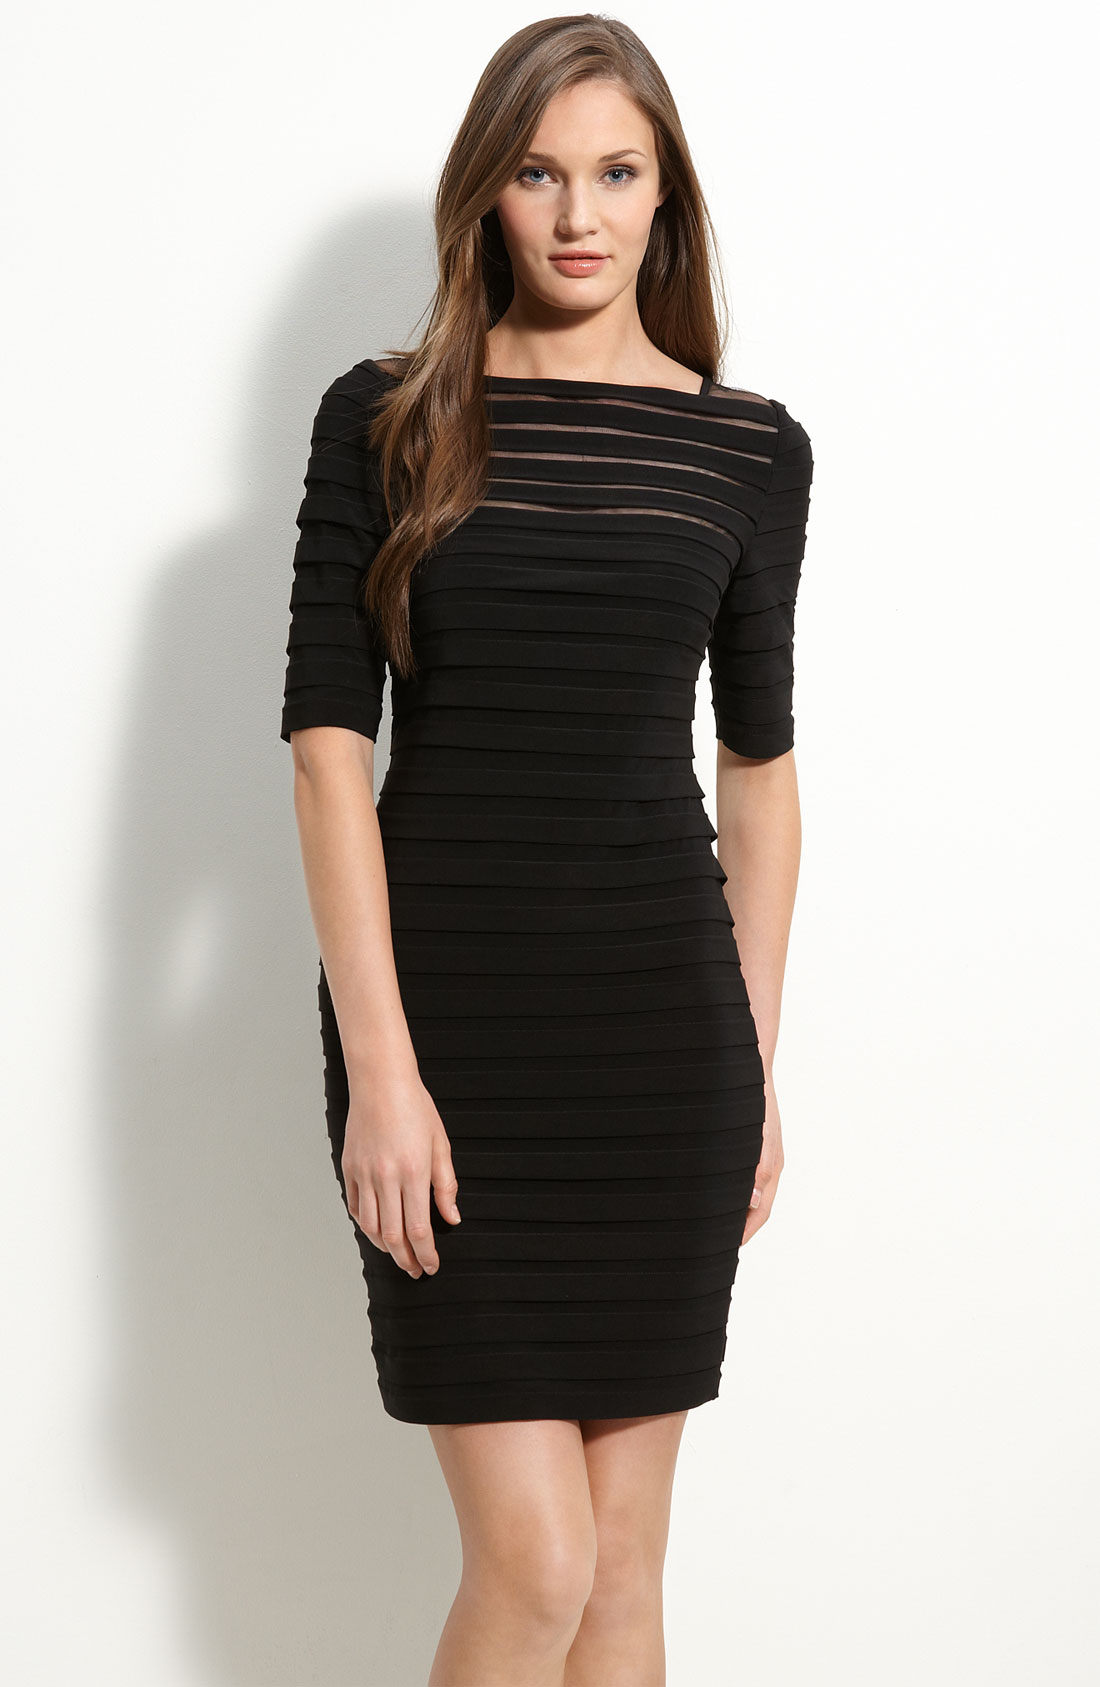 Belk has the Black Sheath Dress you are looking for. Free shipping on qualifying orders, plus easy returns when you shop today!